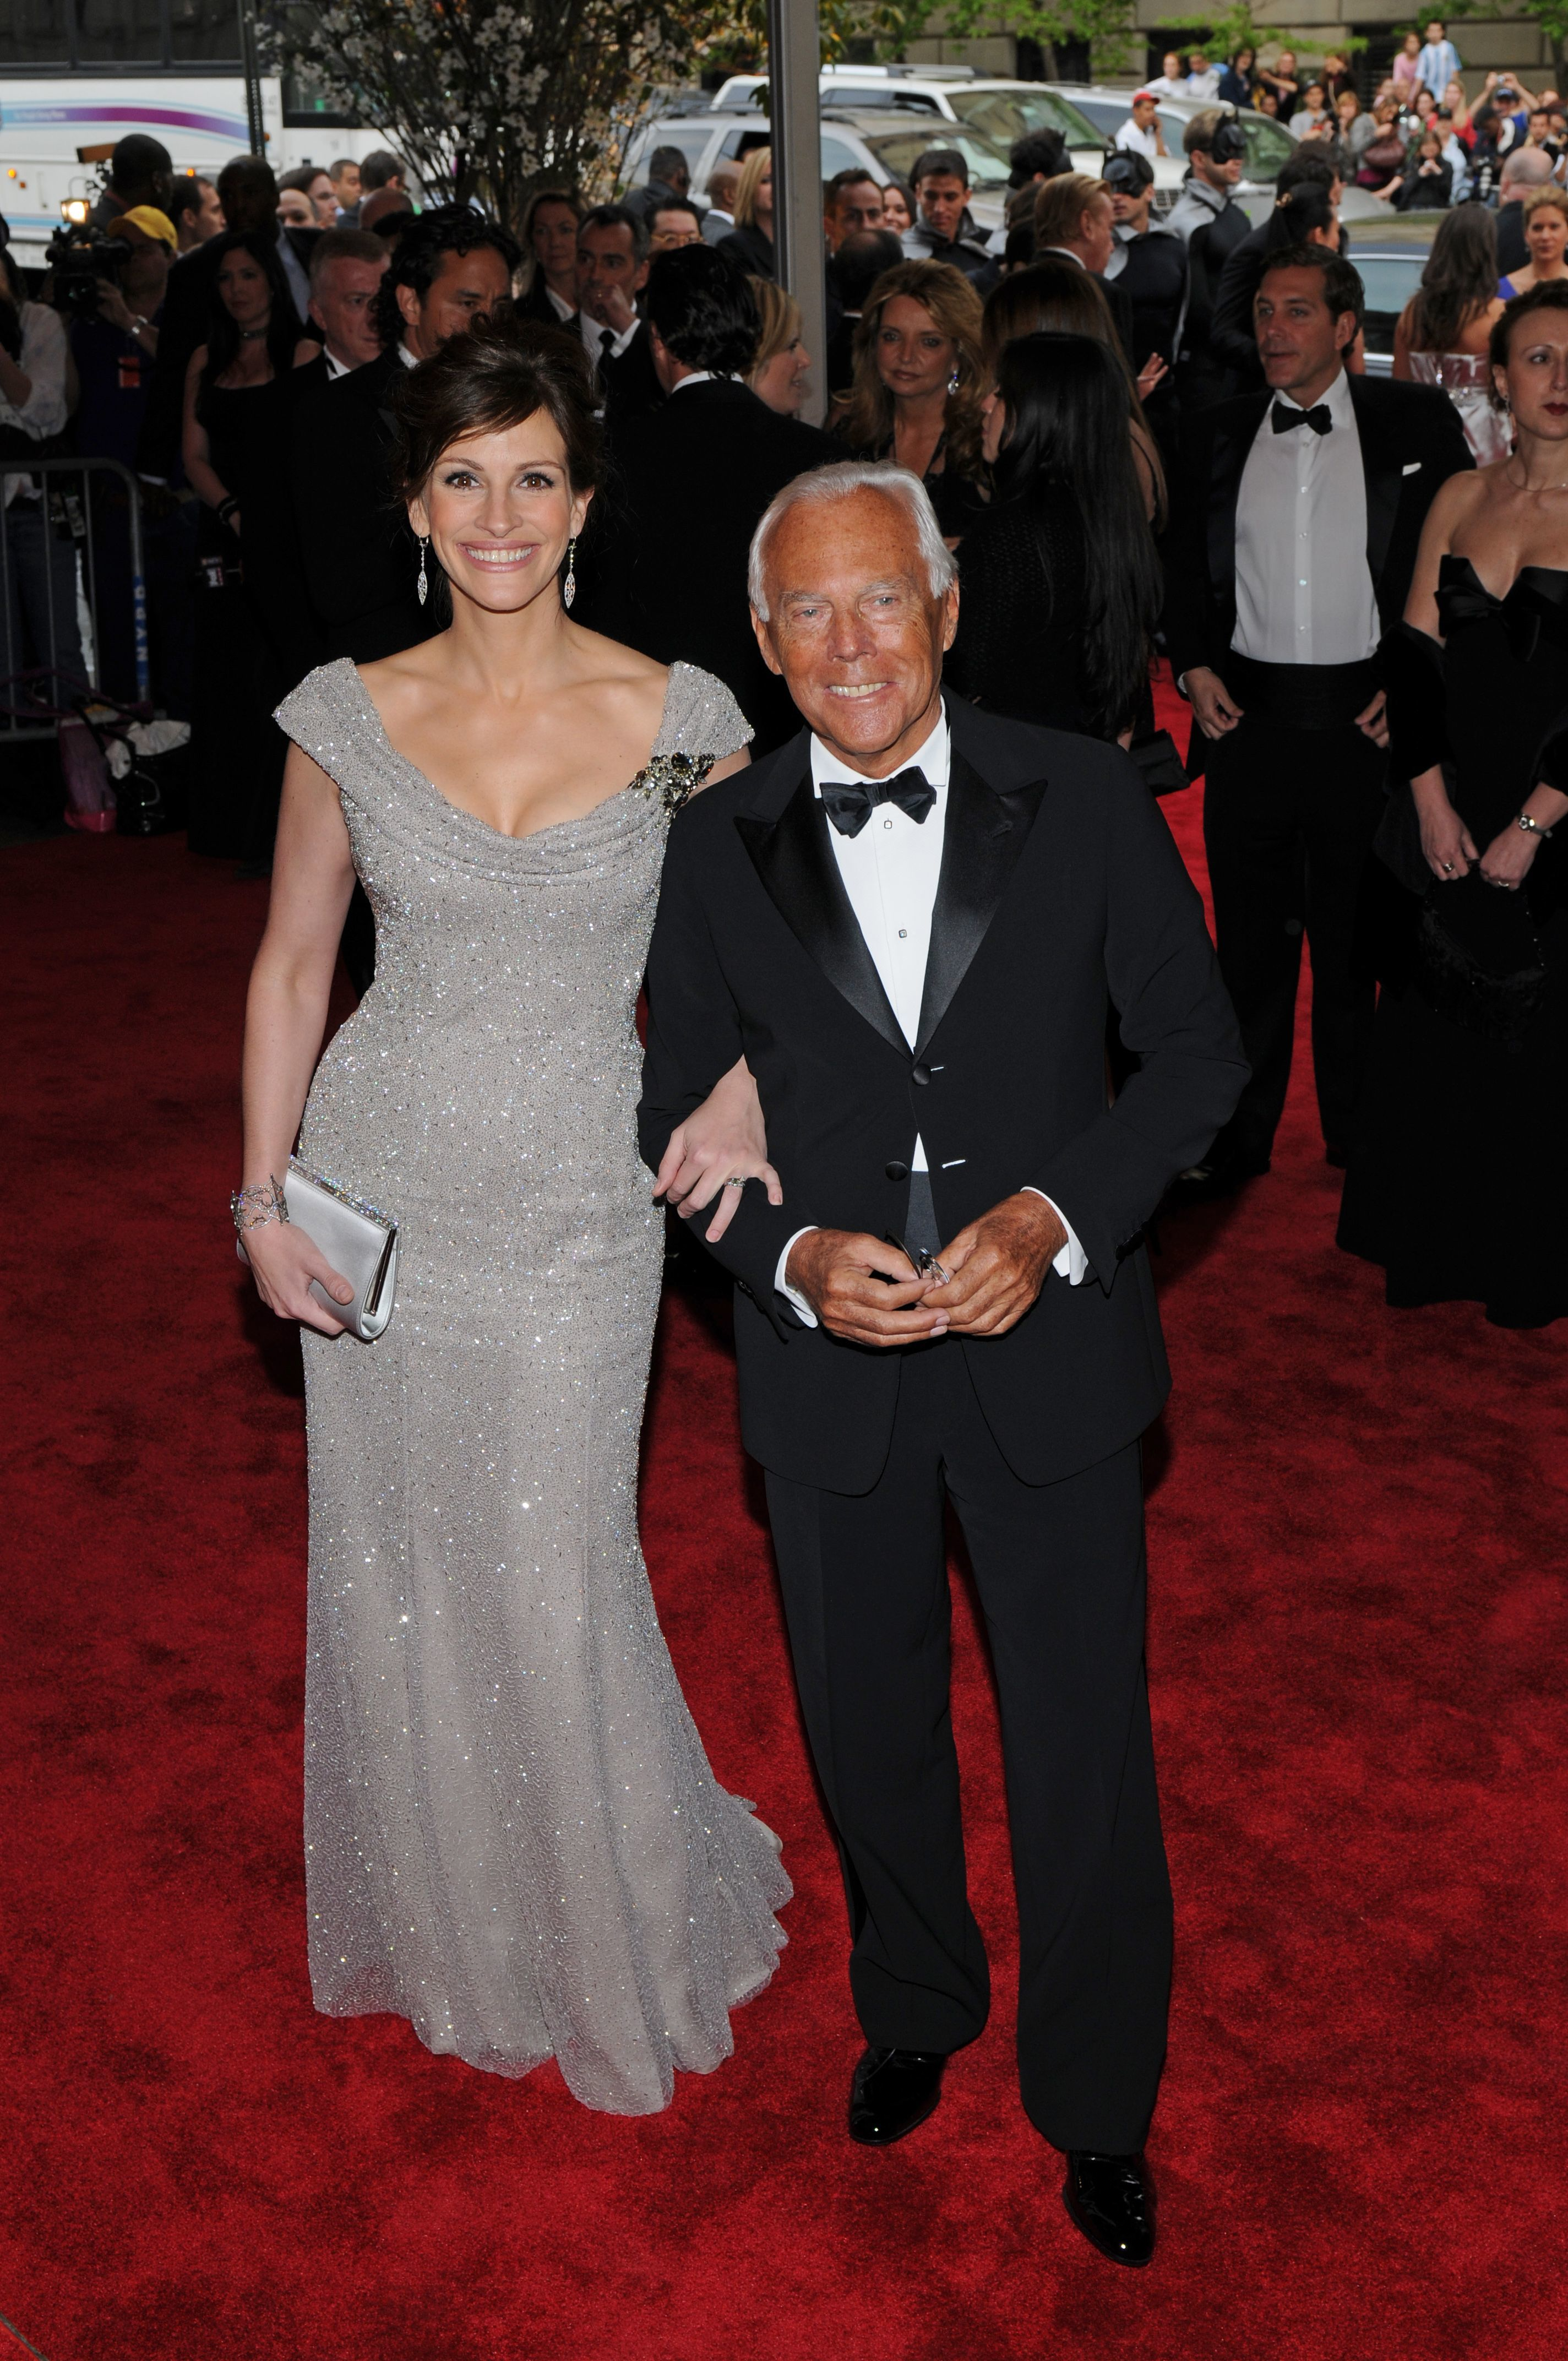 Julia Roberts and Giorgio Armani attend the Metropolitan Museum of Art's annual Costume Institute gala on May 5, 2008 in New York City.